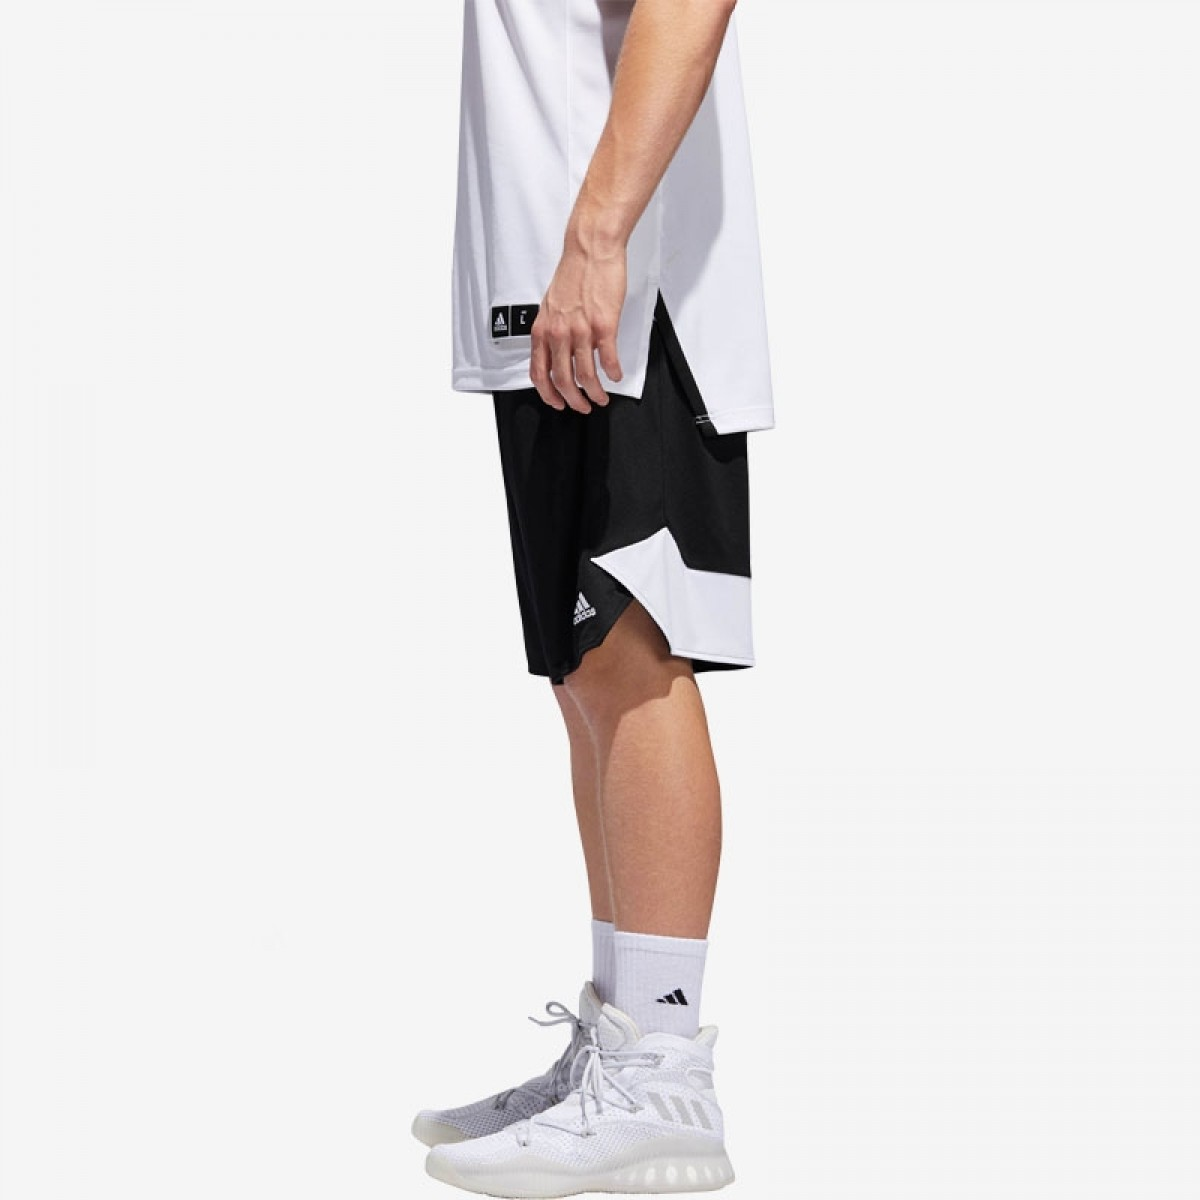 ADIDAS Crazy Explosive Short 'Black/White' BS5016